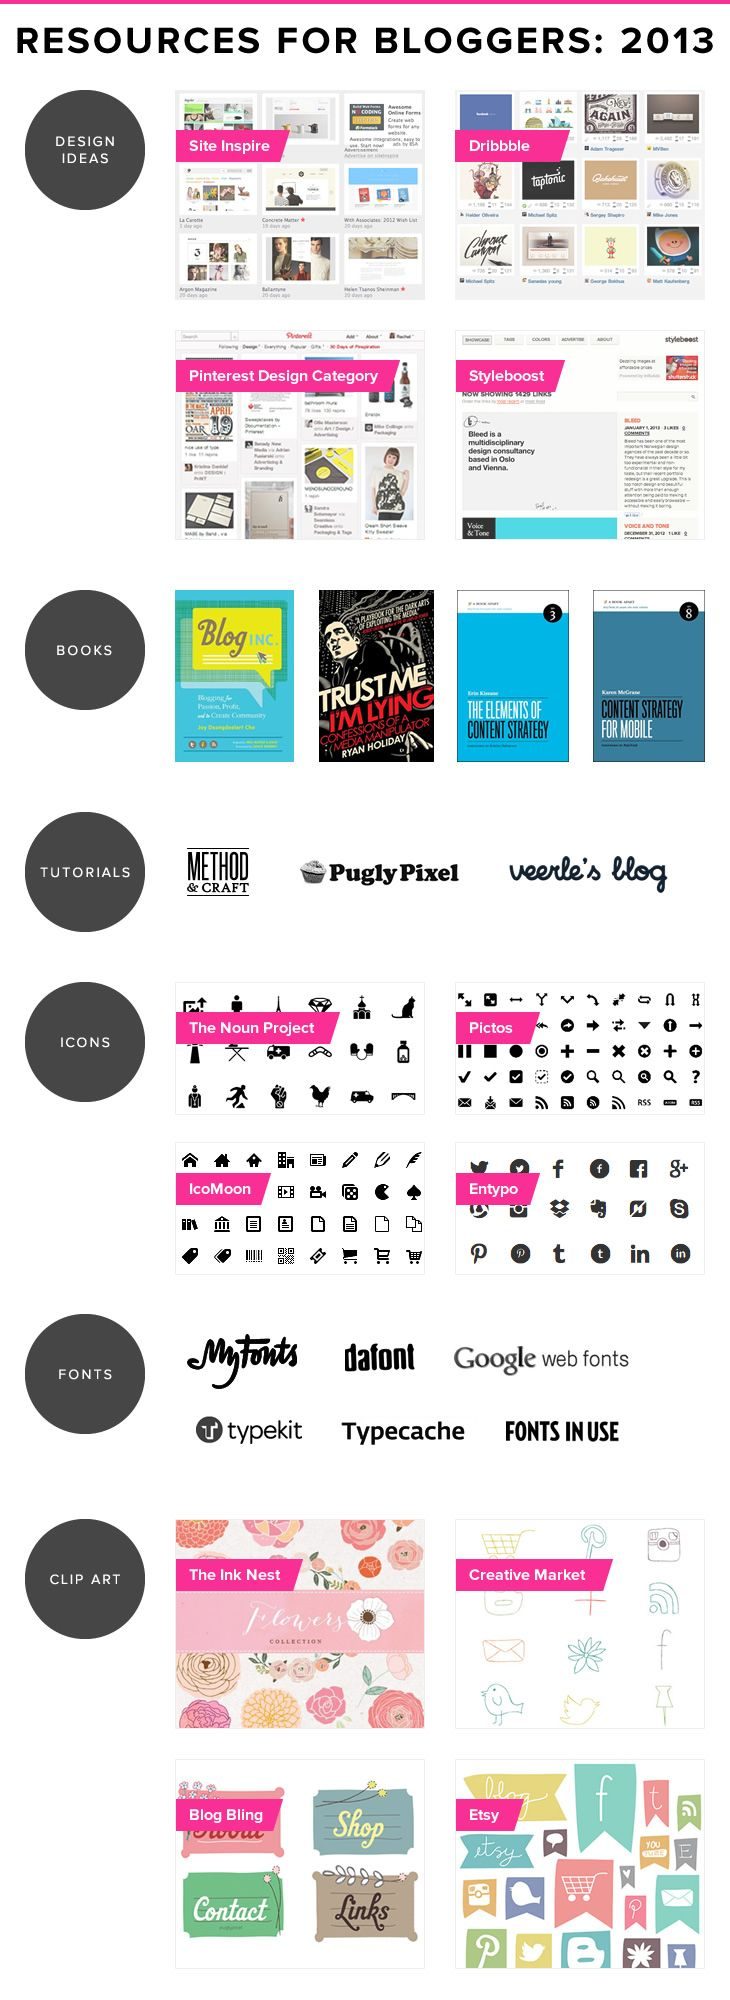 Blog Design Resources for 2013: ideas, books, tutorials, icons, fonts, clip art